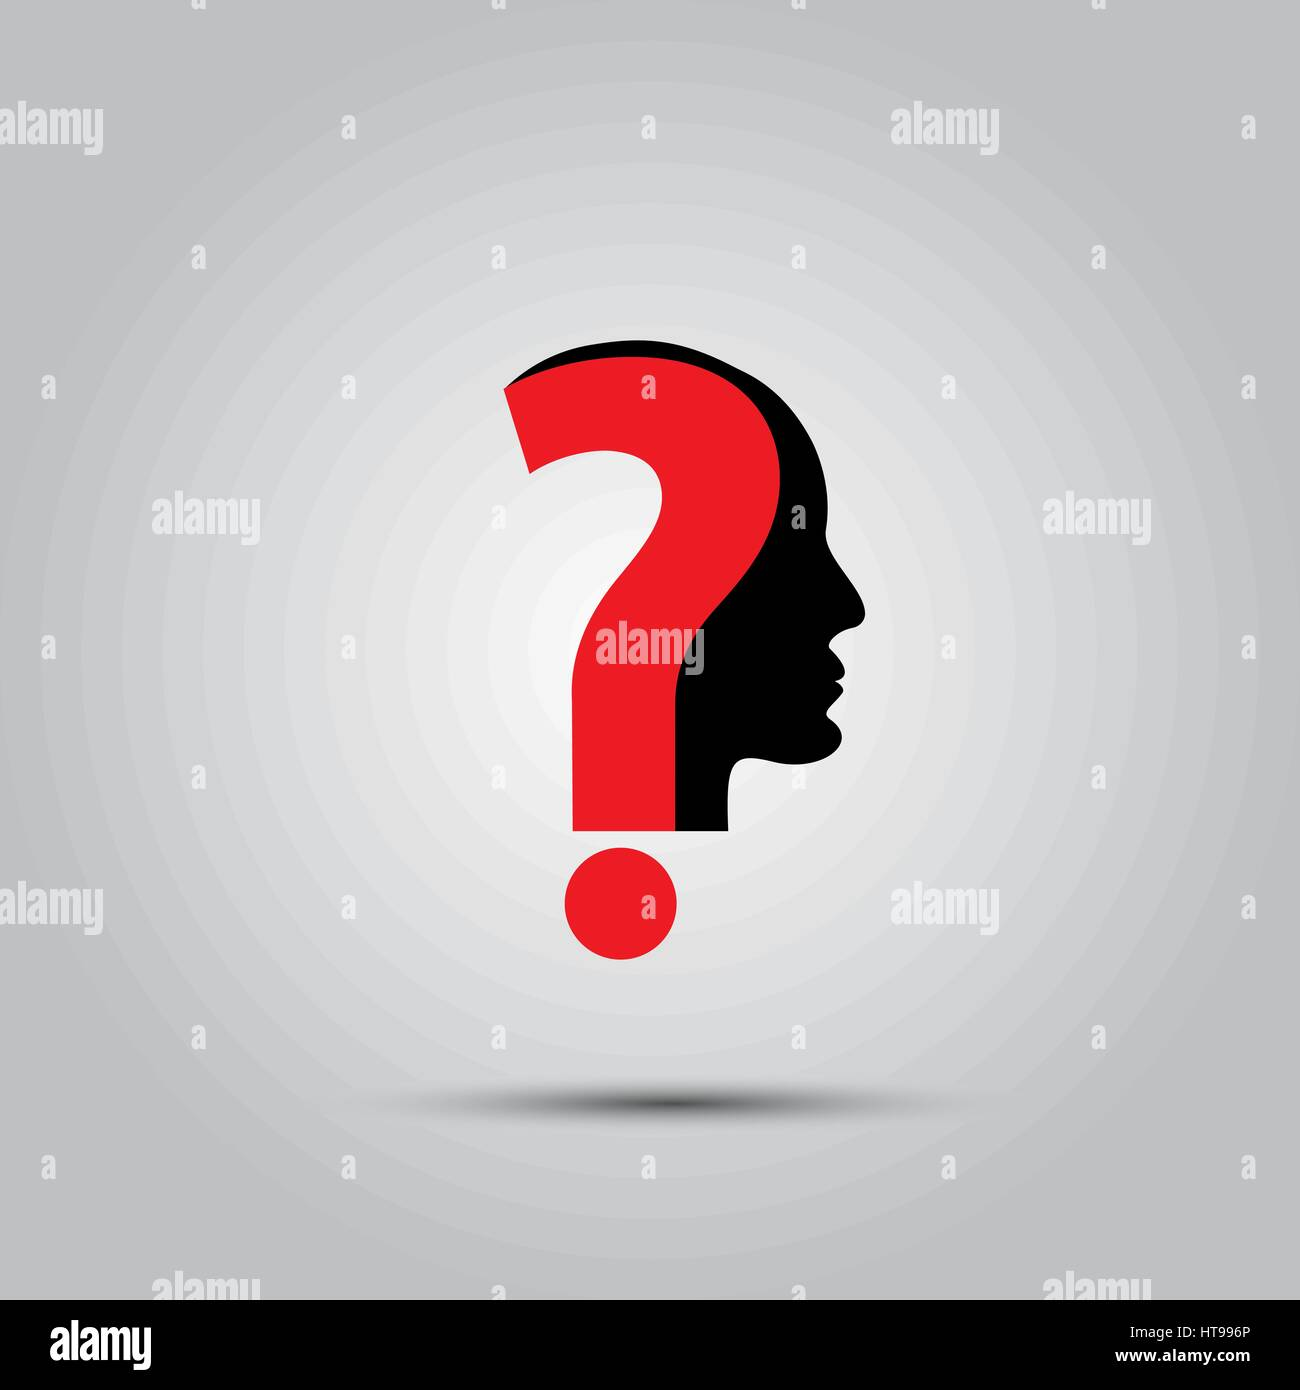 Human face with question mark. Illustration on white - Stock Image